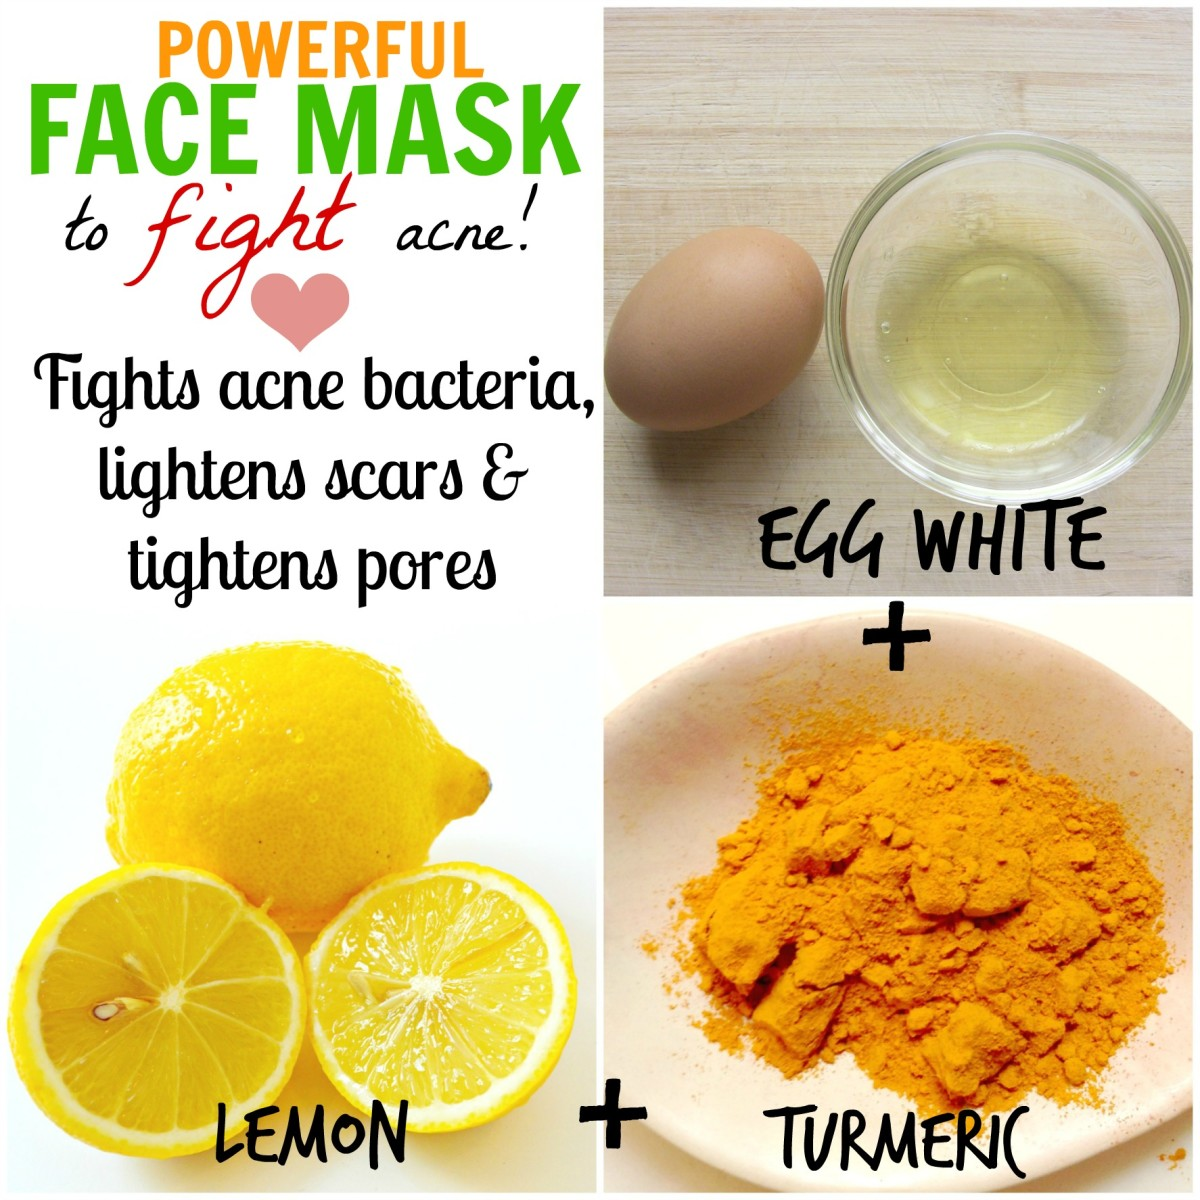 Egg whites are a popular home remedy for beautiful skin. Coupled with lemon, which lightens scars, and turmeric, which actively fights acne, this face mask is a powerful anti-acne remedy!